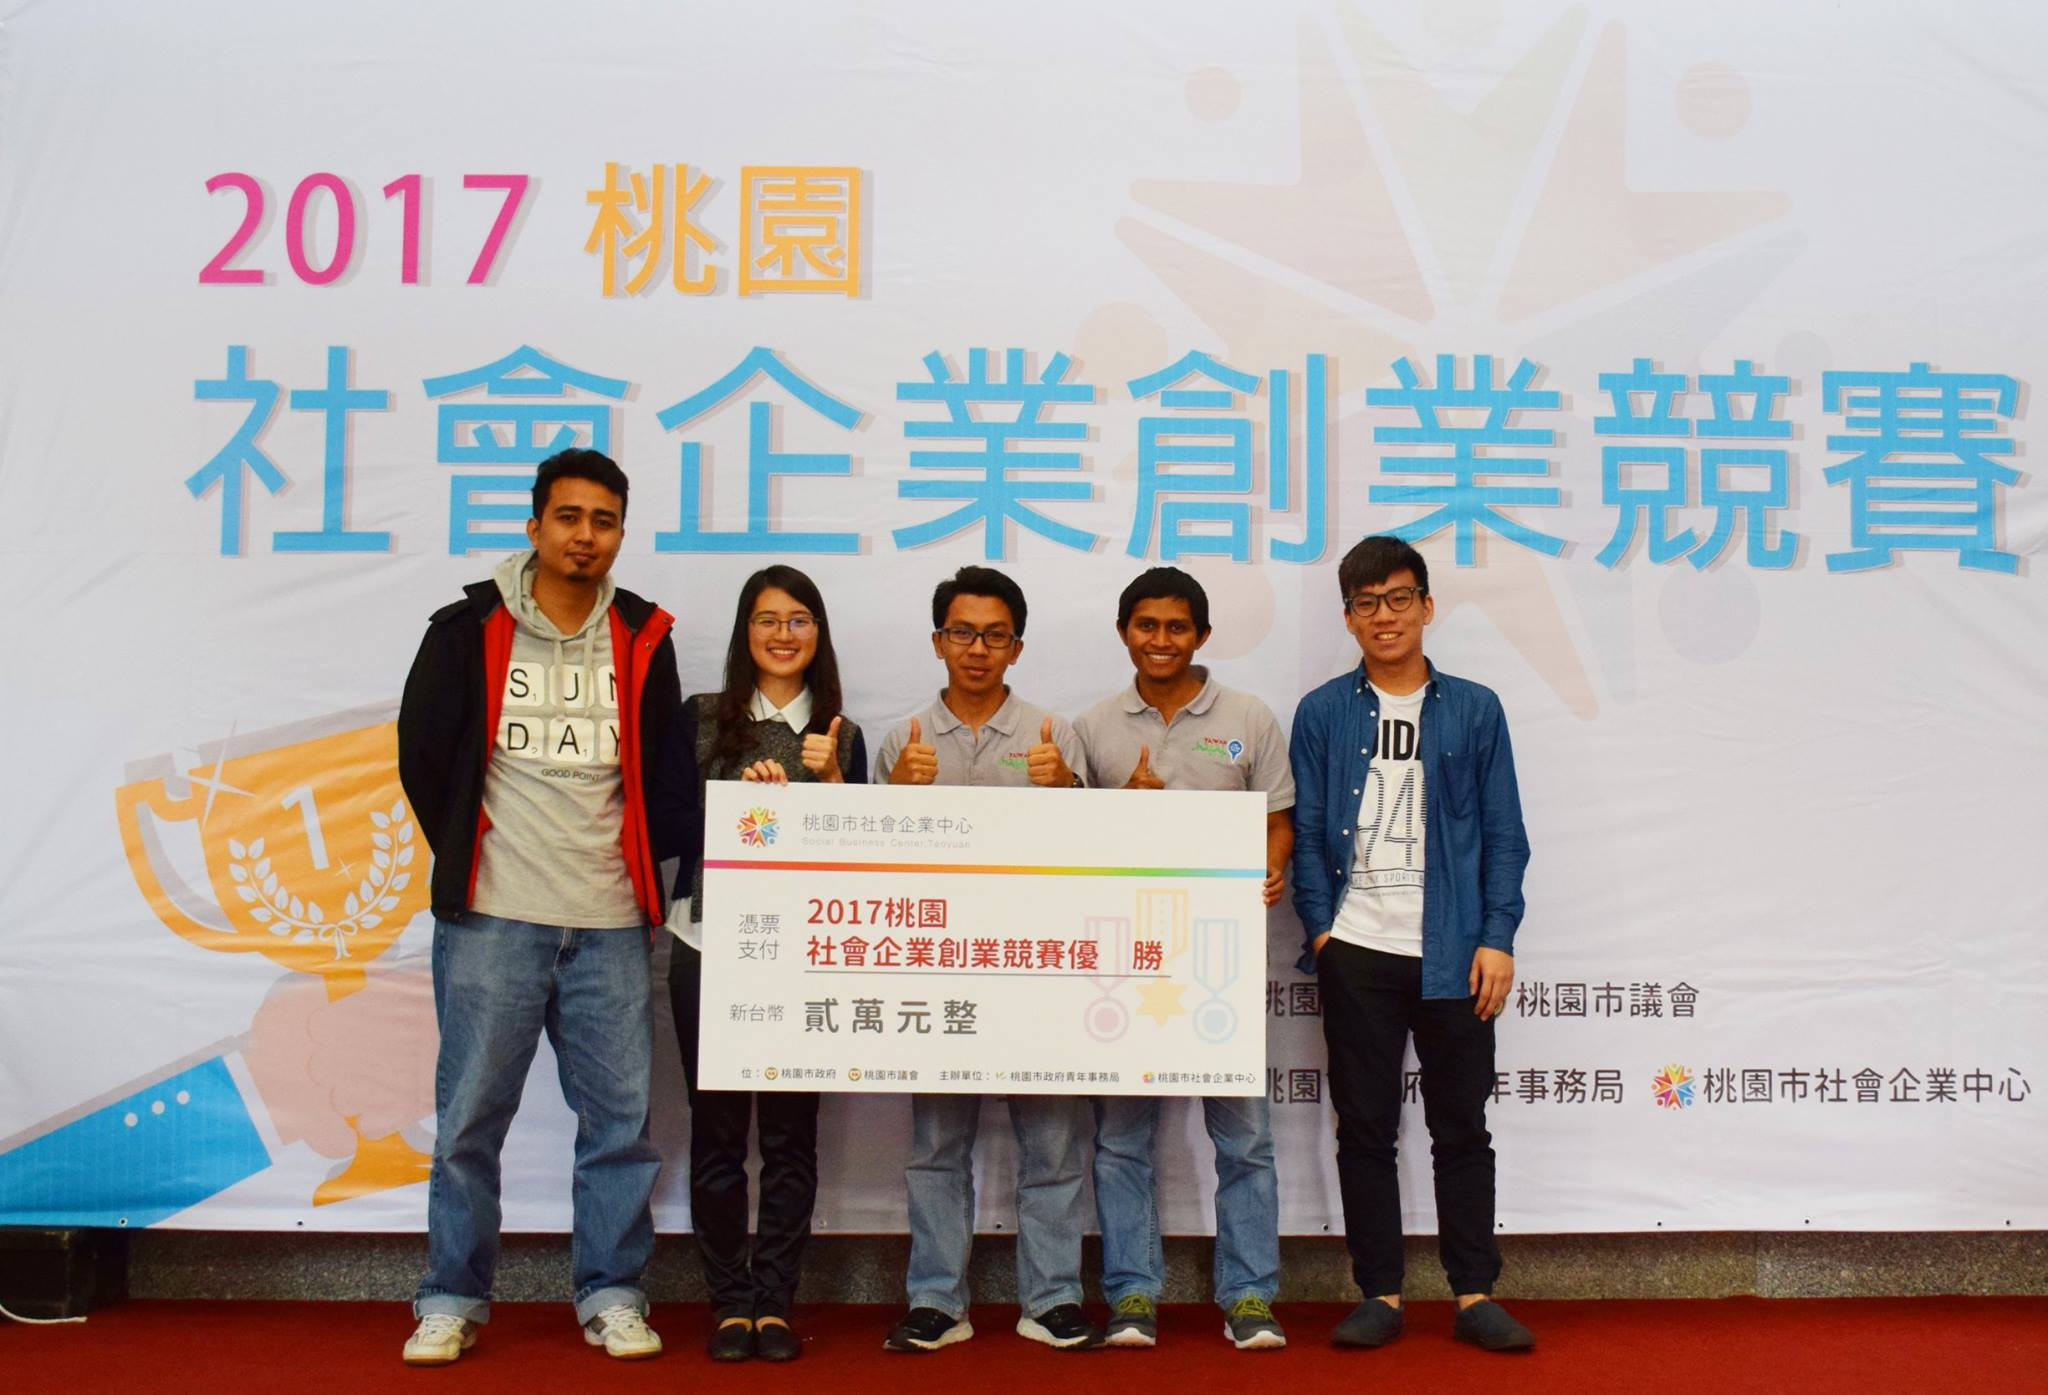 Taiwan Halal win competition of Social Business in Taoyuan